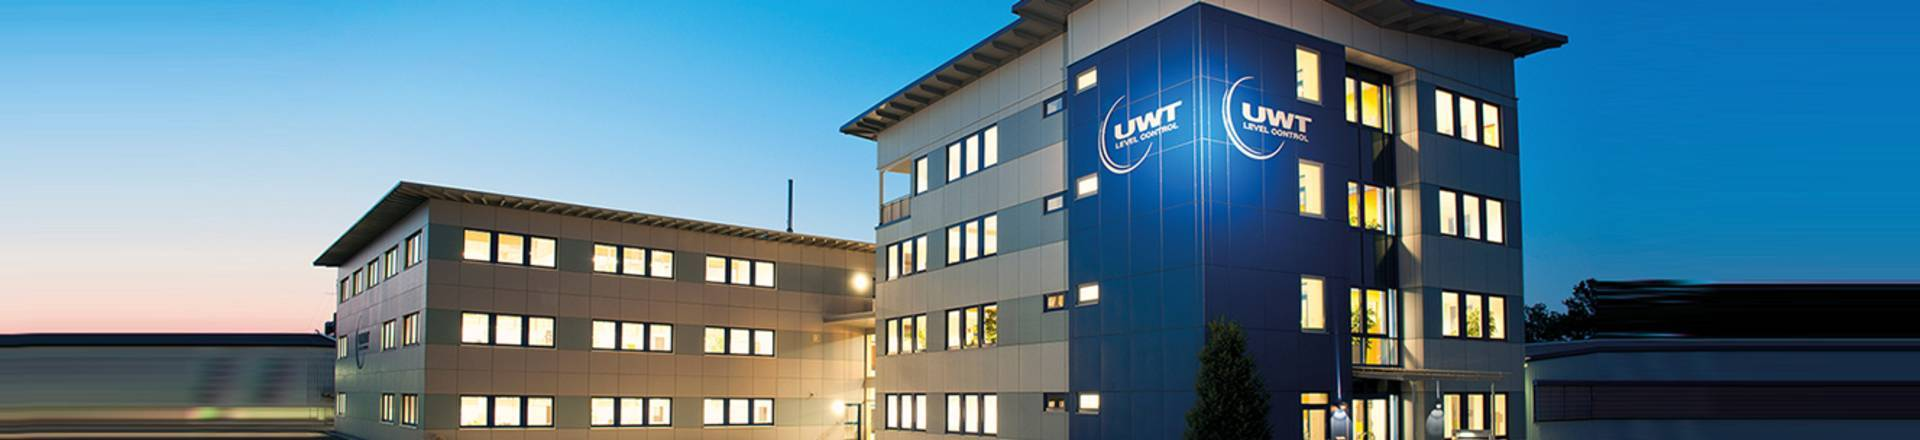 UWT Ltd, expert of of measurement technology with company headquarters in Betzigau